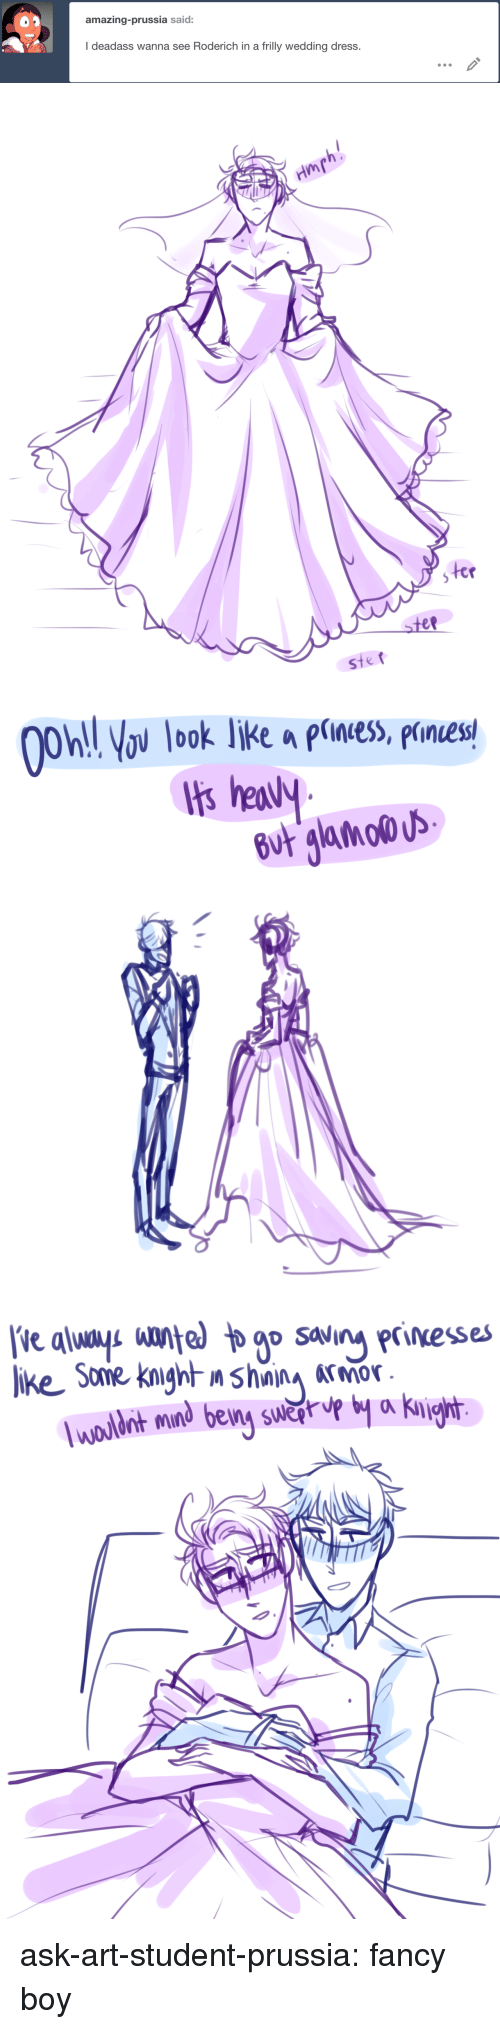 Target, Tumblr, and Blog: amazing-prussia said:  I deadass wanna see Roderich in a frilly wedding dress.   ep   On ov look liKe a piness, prnes  b0   nt mind being swǎrup by a Kni ask-art-student-prussia:  fancy boy